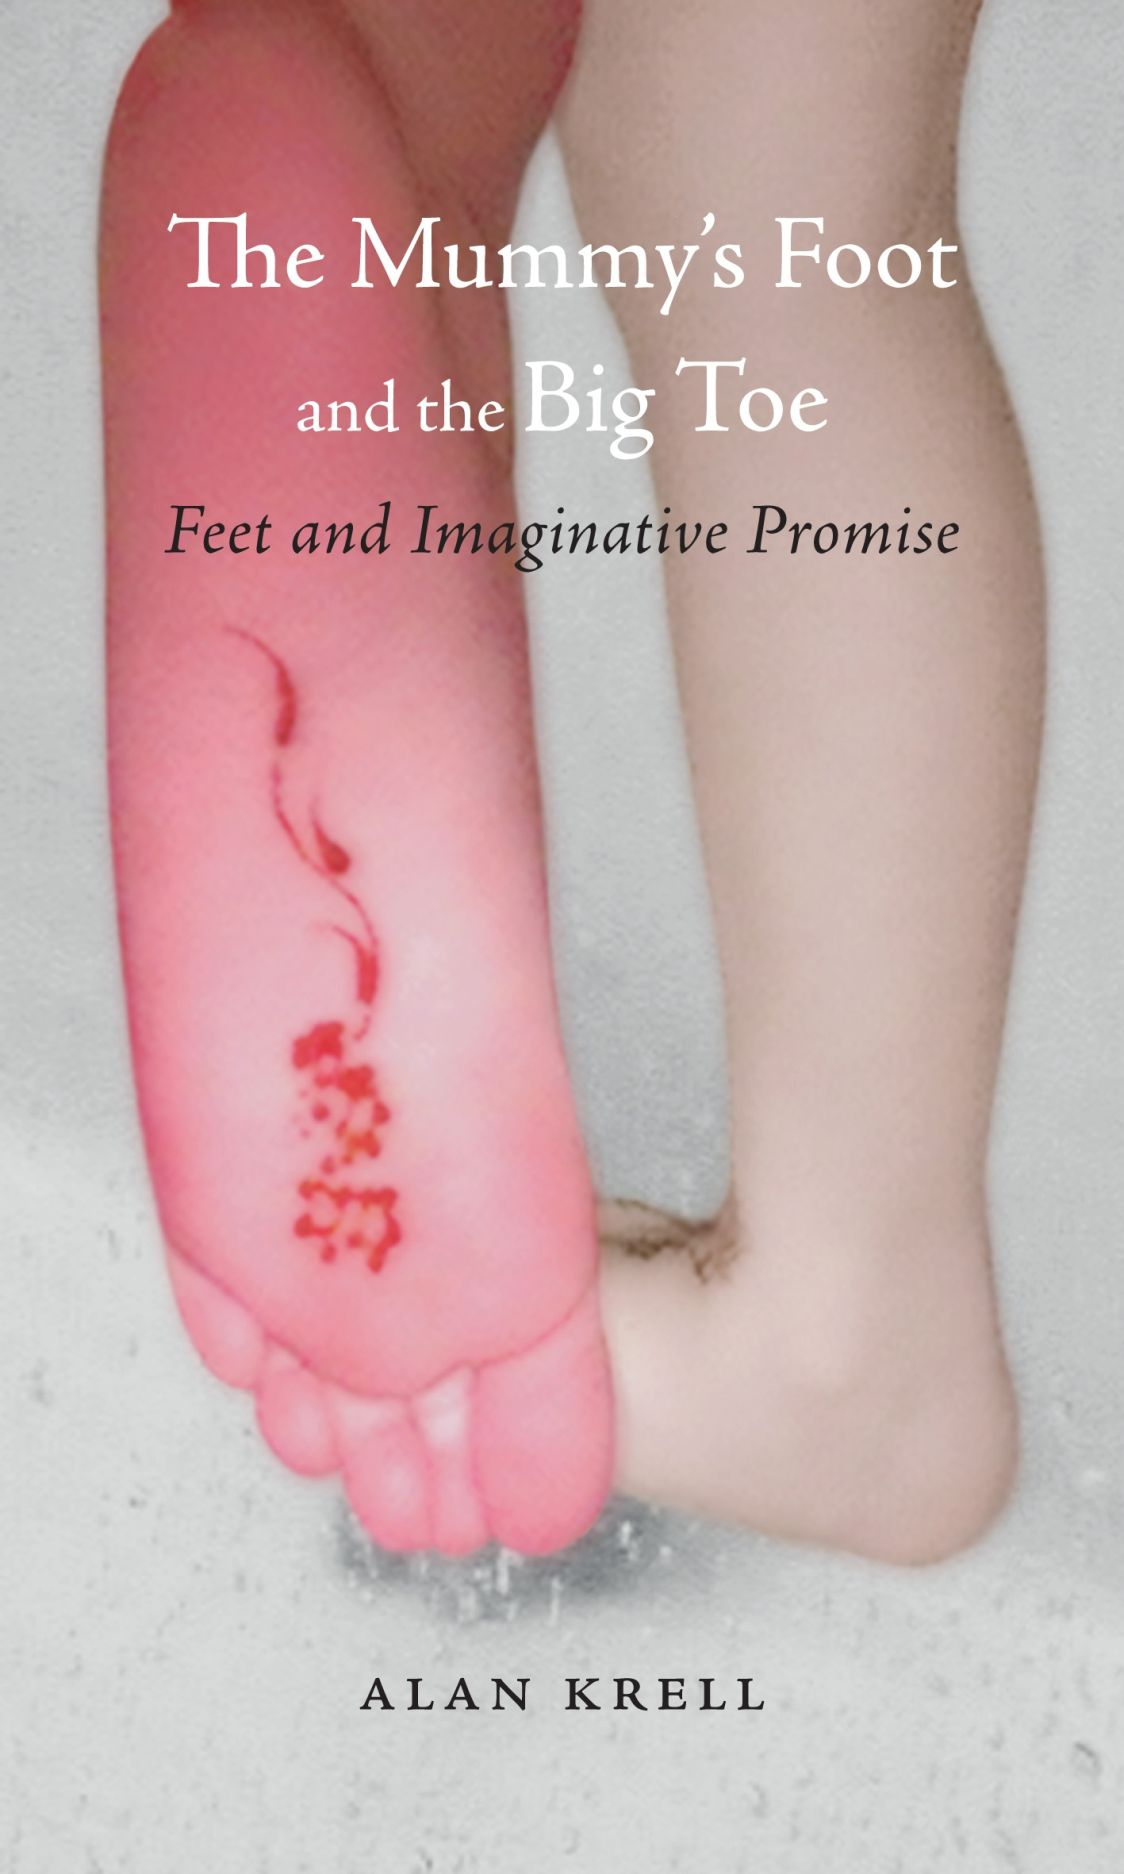 The Mummy's Foot and the Big Toe: Feet and Imaginative Promise